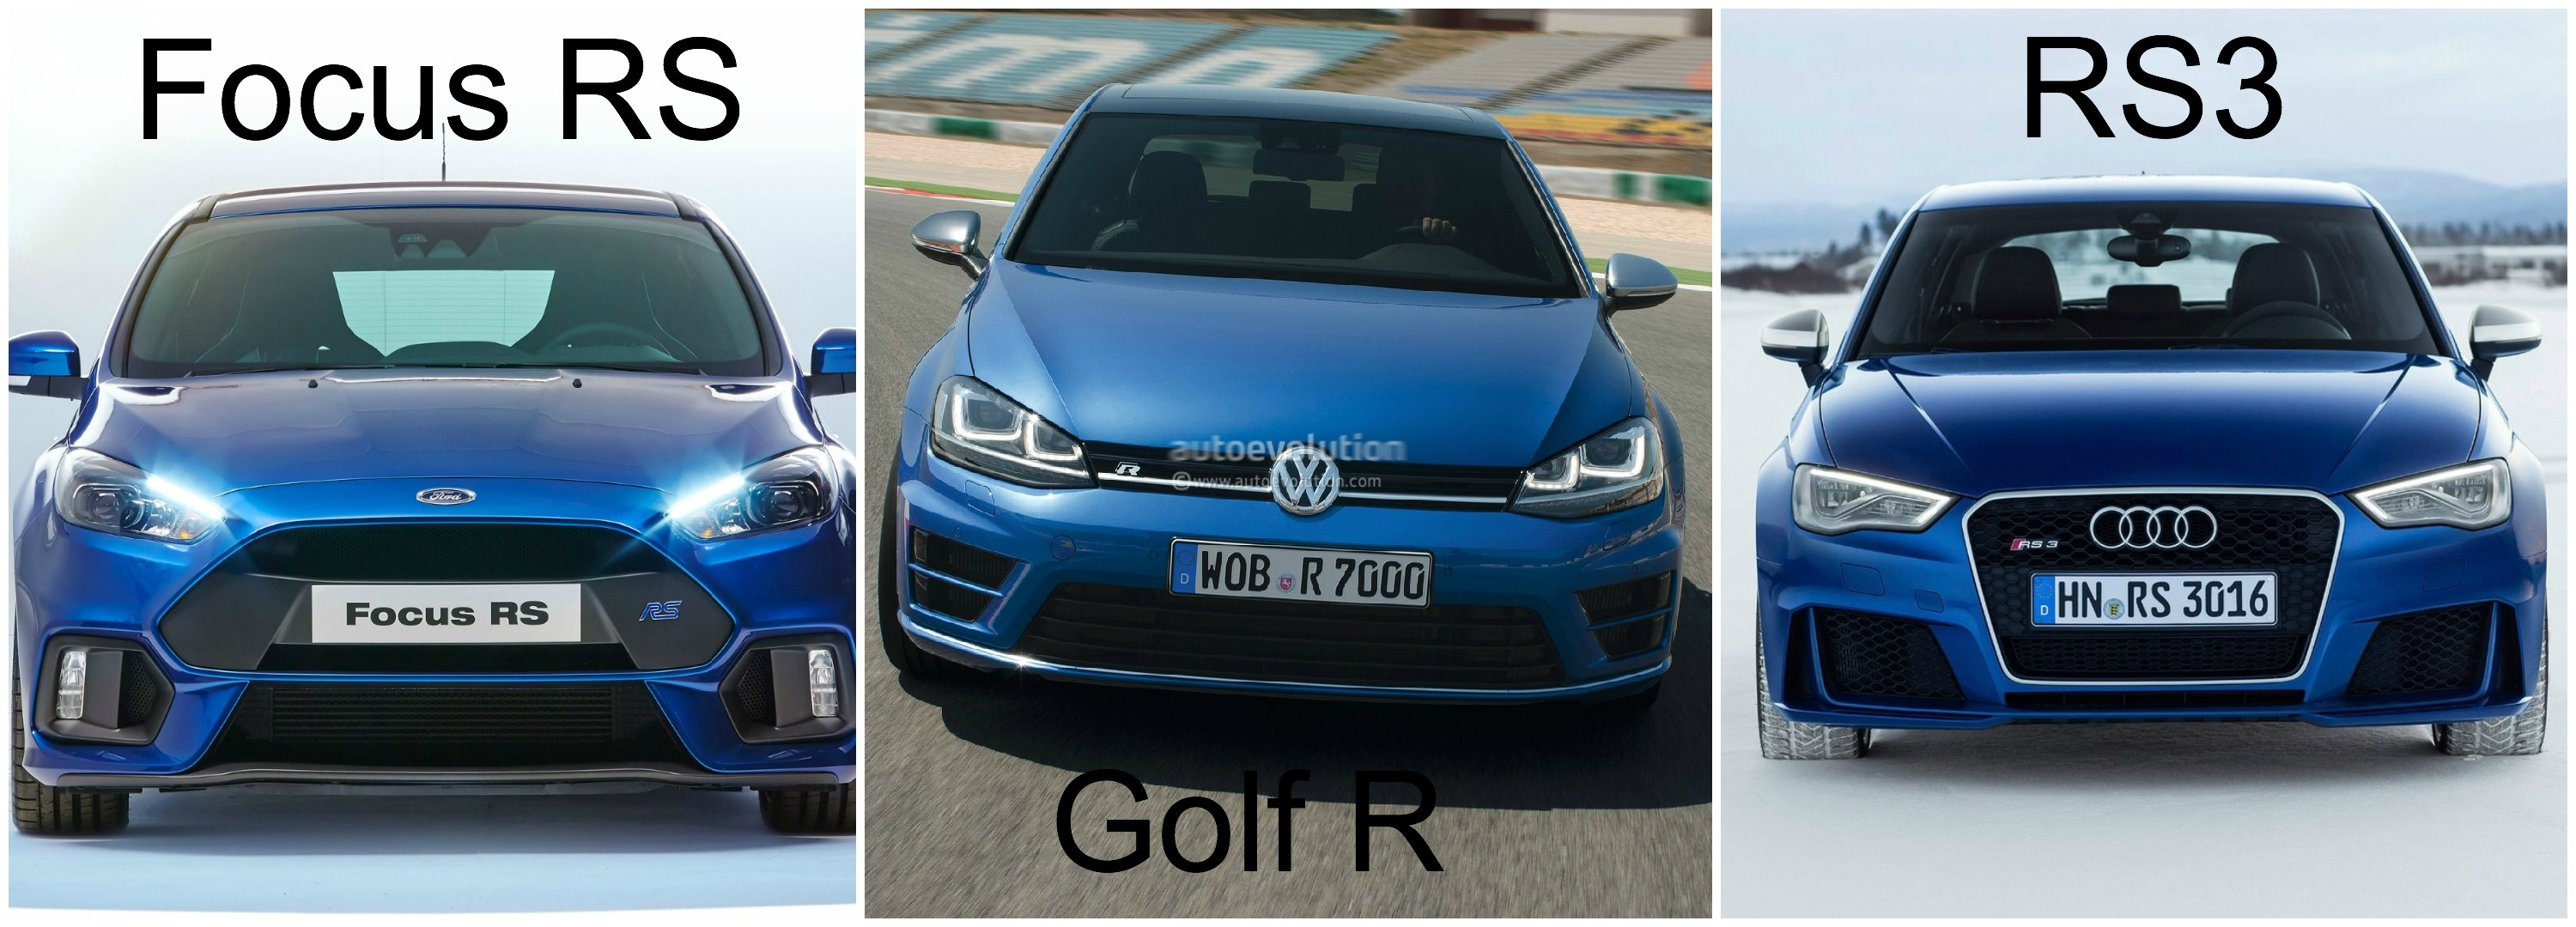 2016 Ford Focus RS vs Golf R and Audi RS3  Hyper Hatch Photo